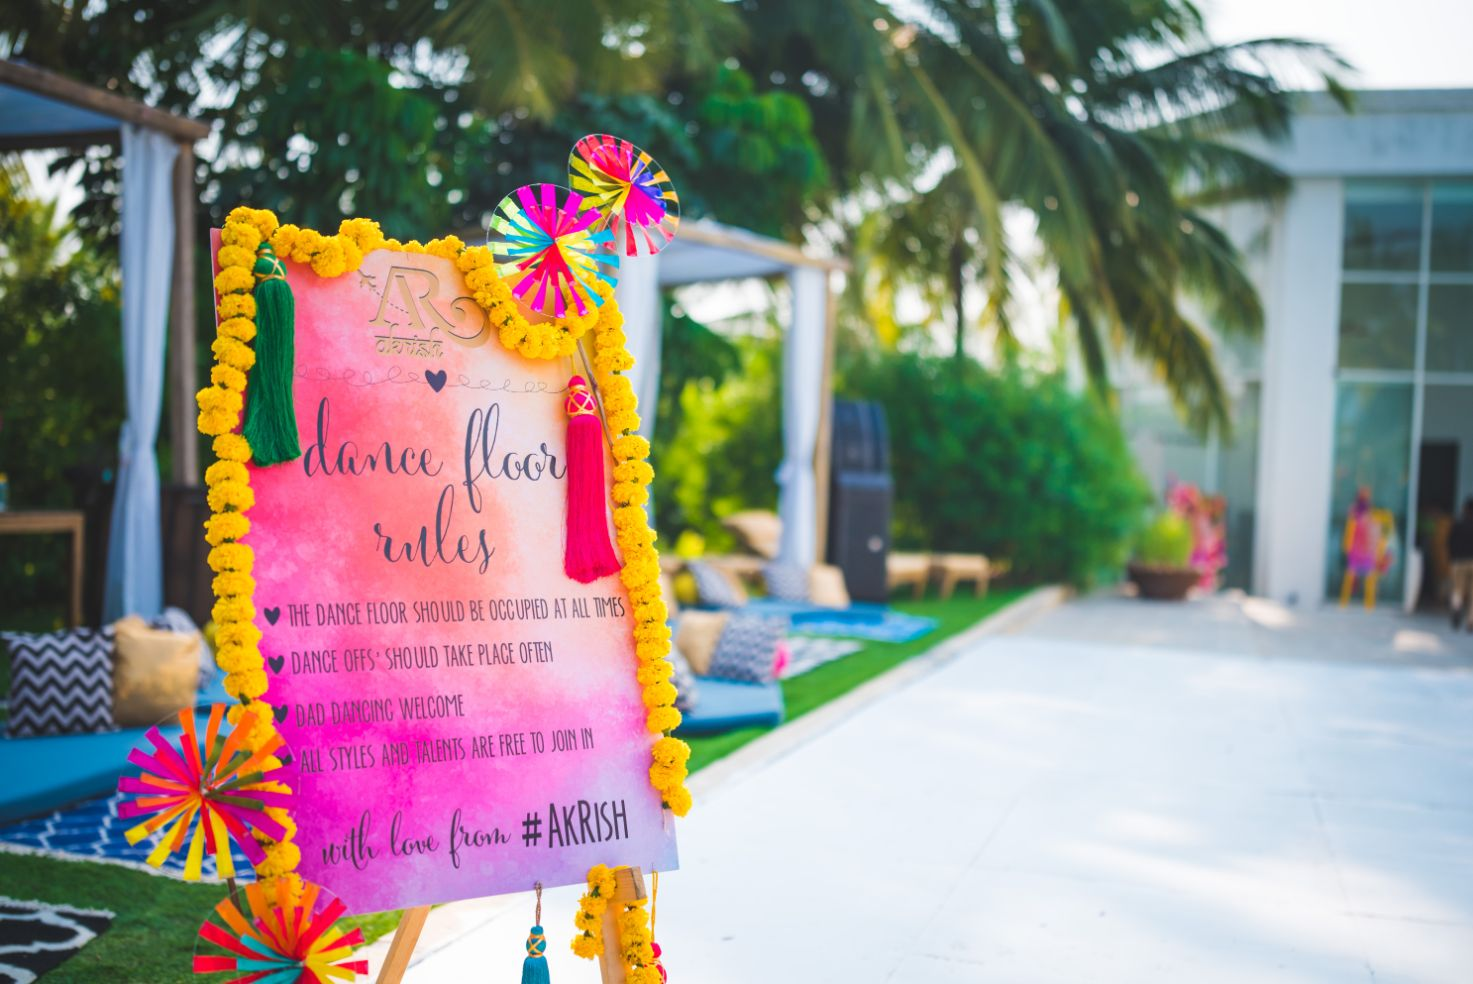 Sangeet Ceremony Welcome Signage Decorated with Marigolds and Pinwheels